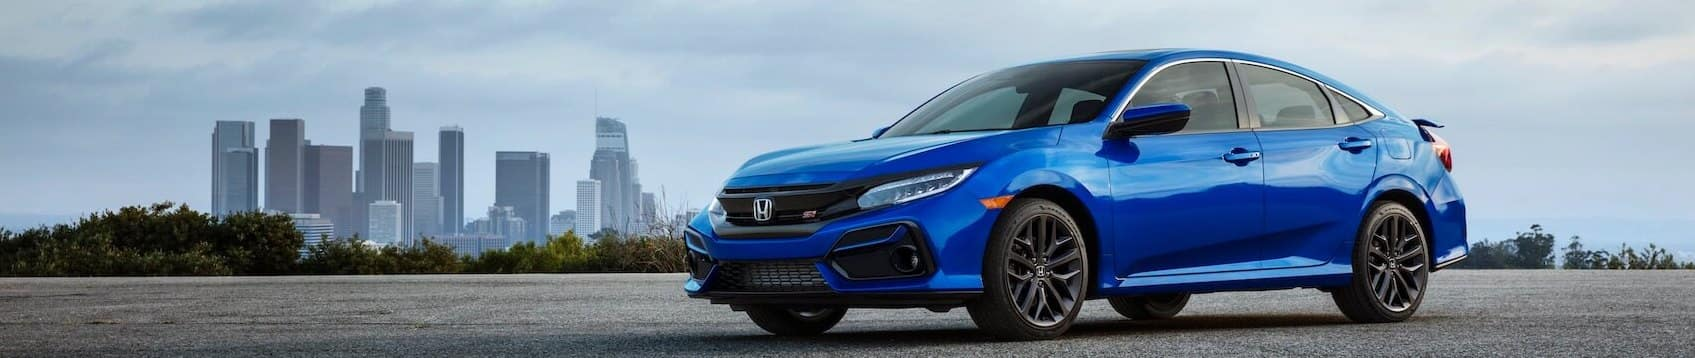 Honda Models for Every Driver